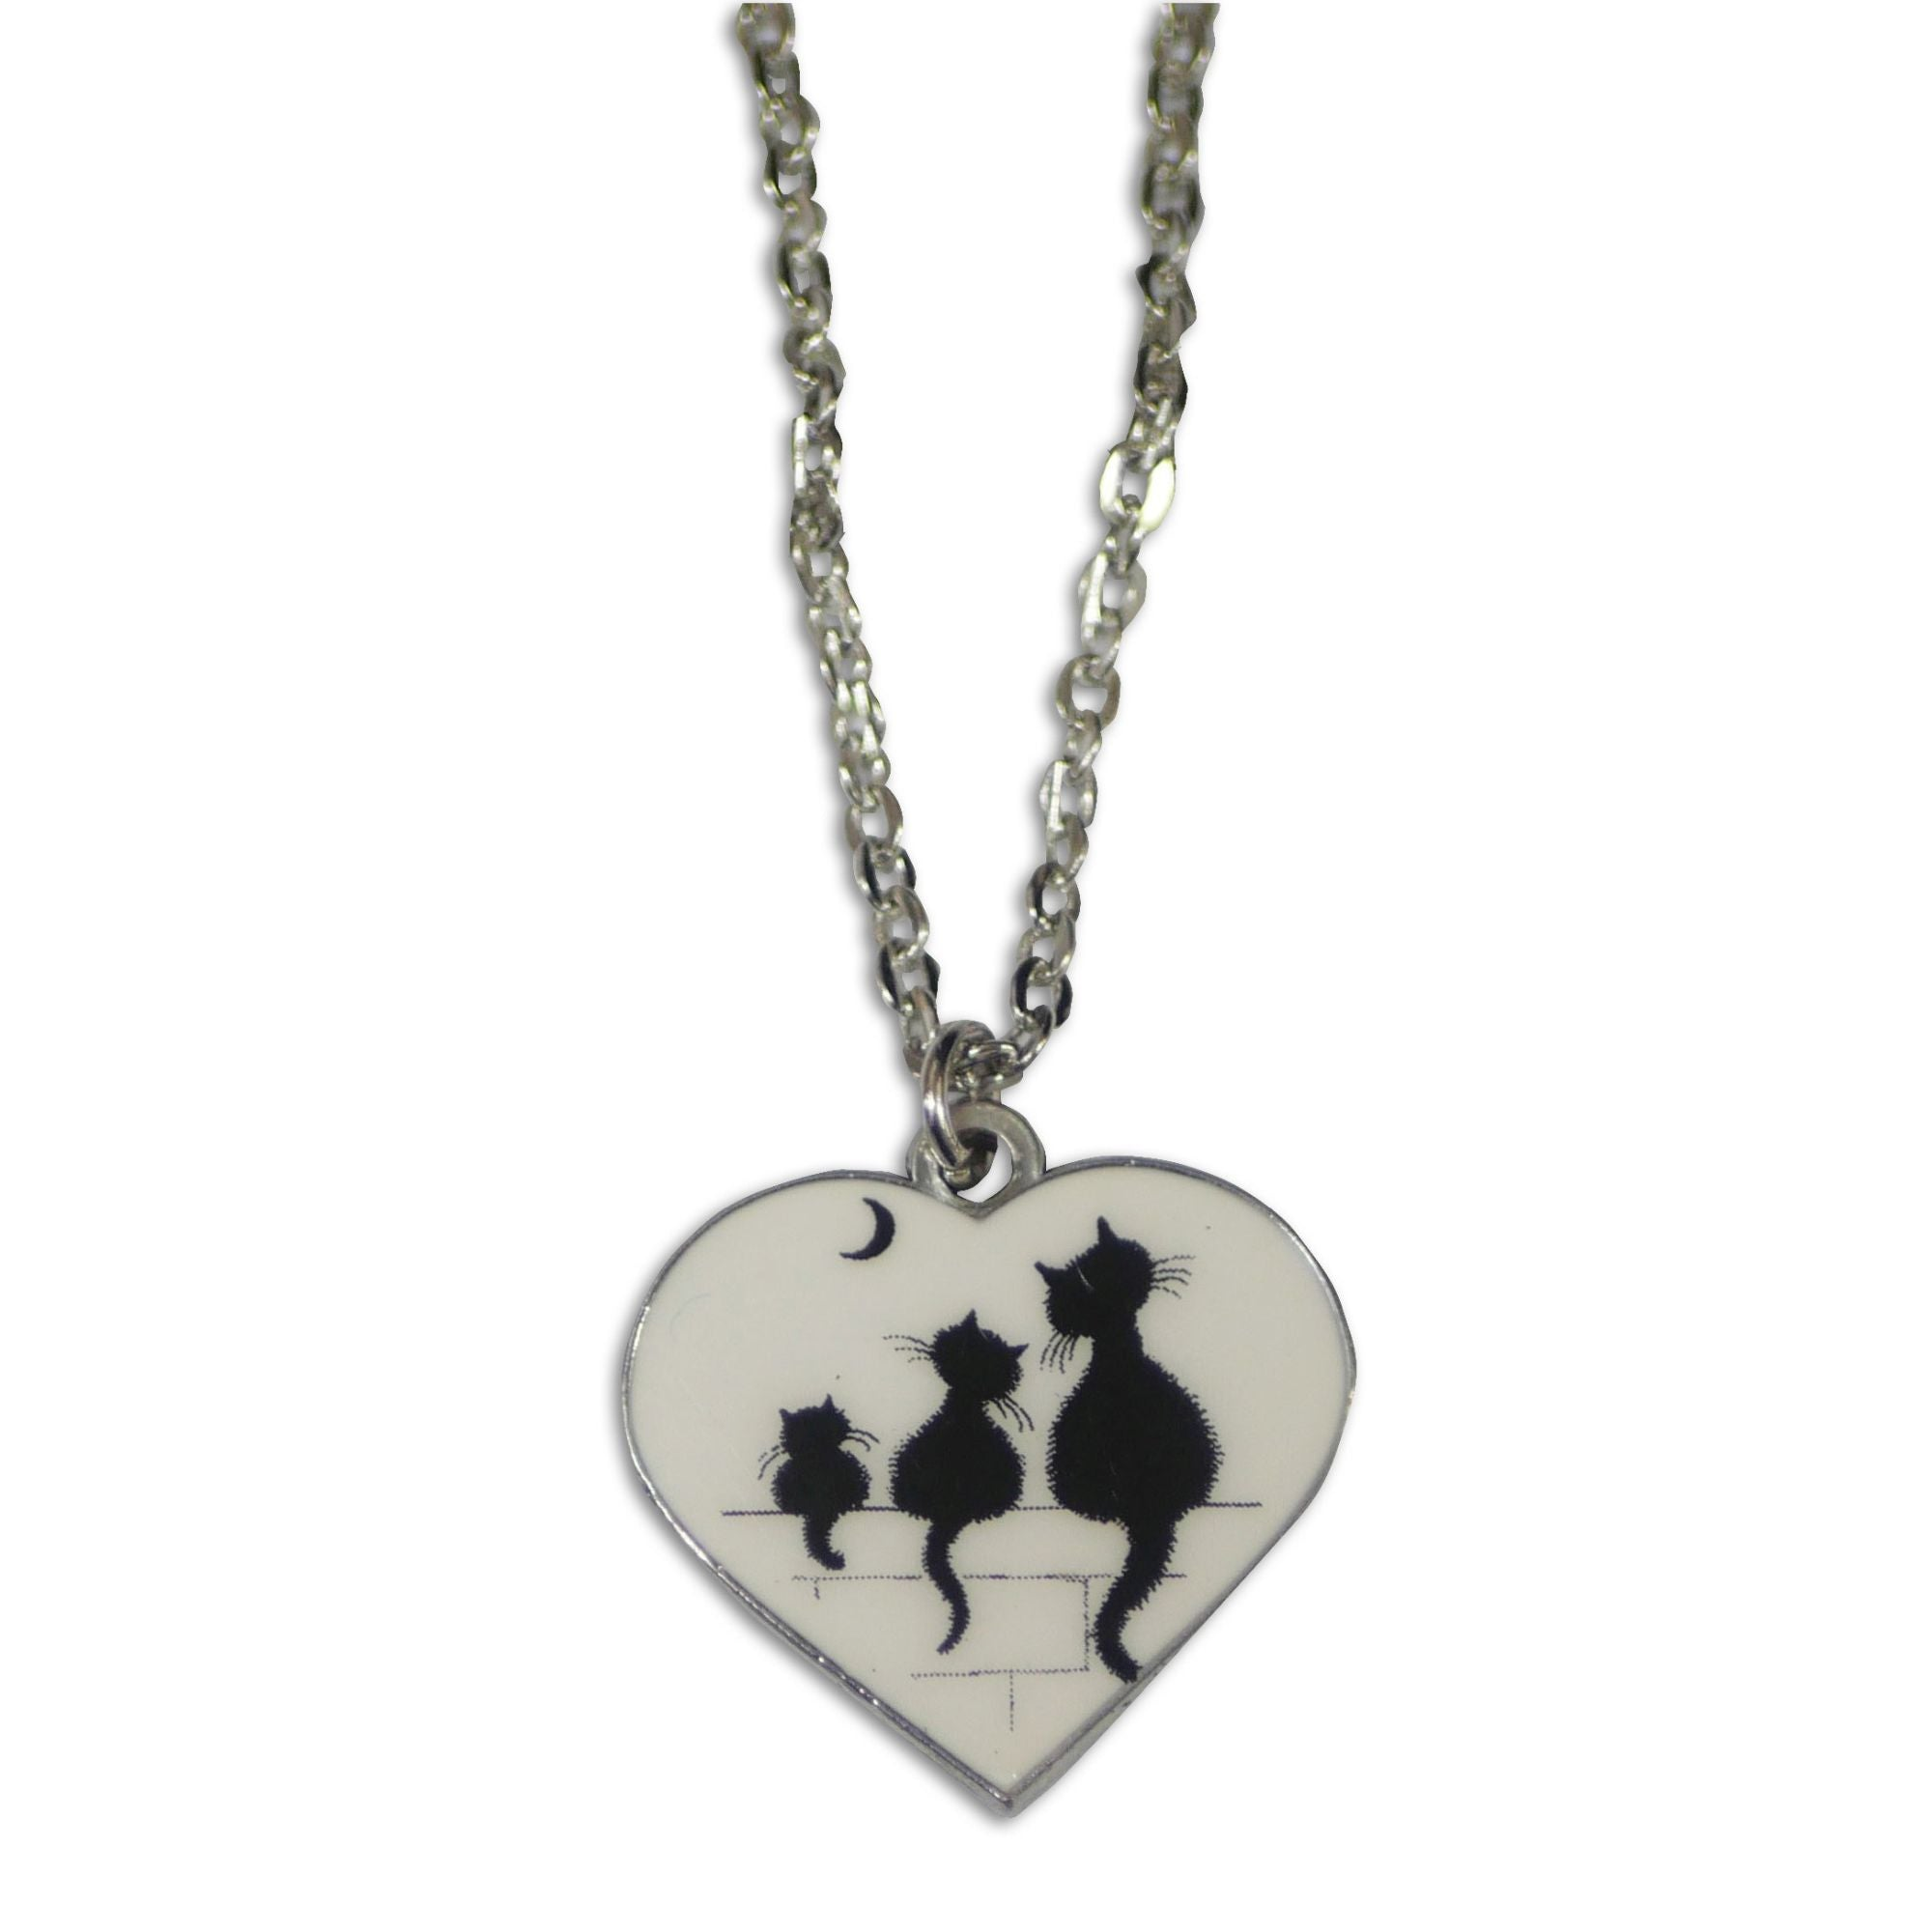 Dubout Cats Heart Pendant